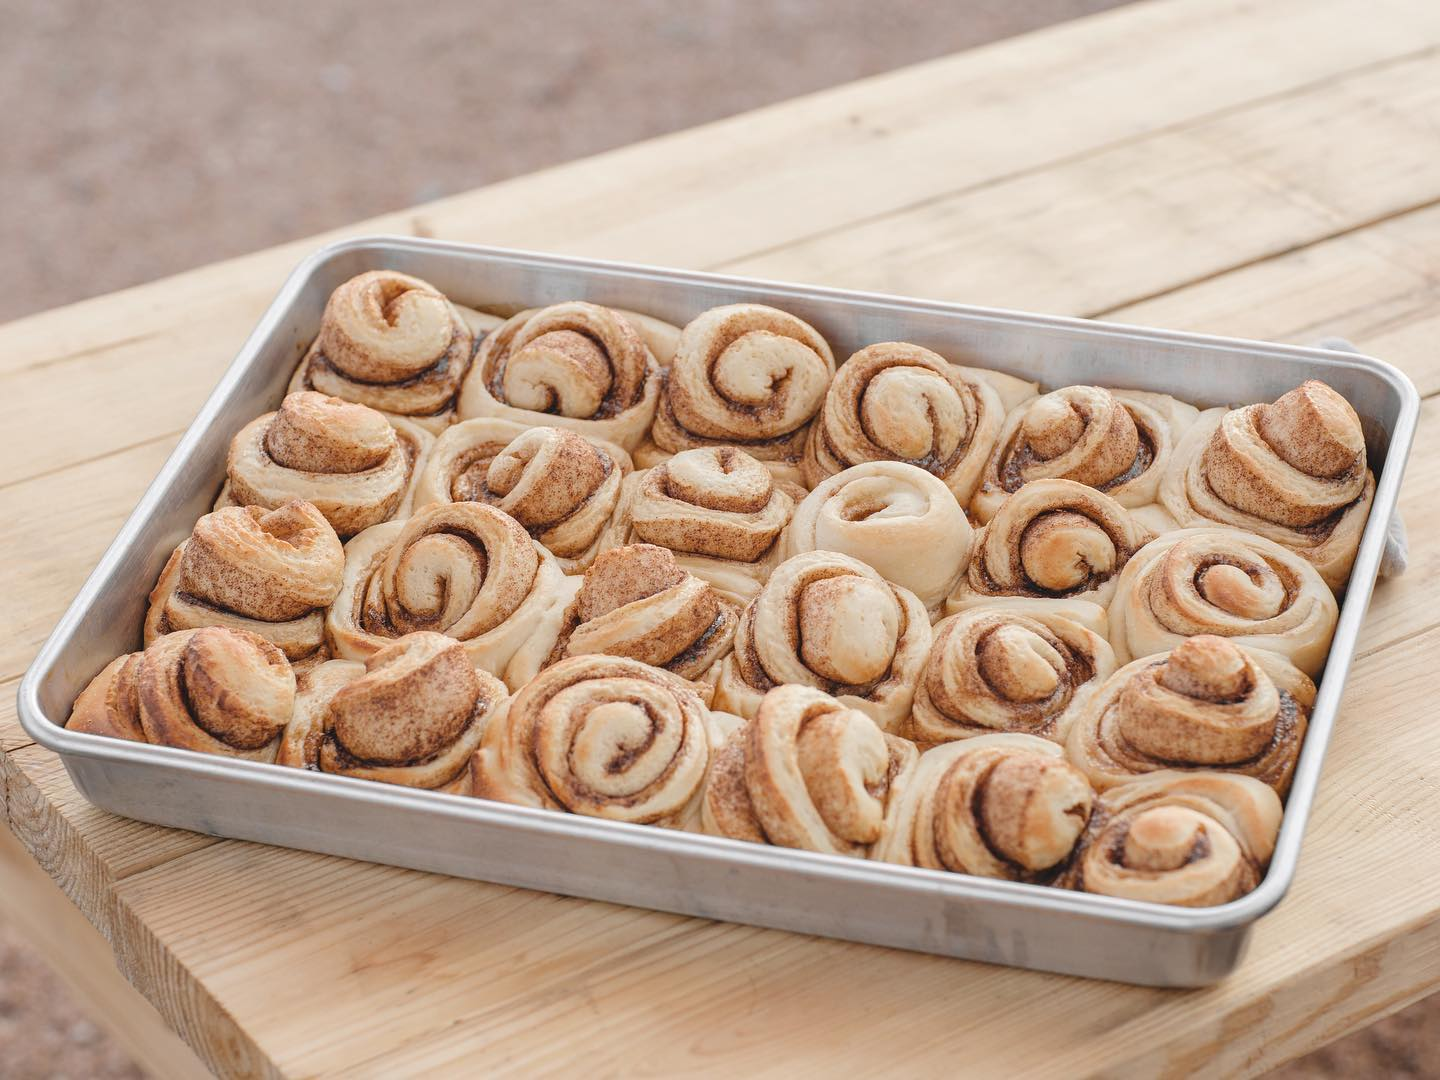 Cinnamon rolls from Teal House